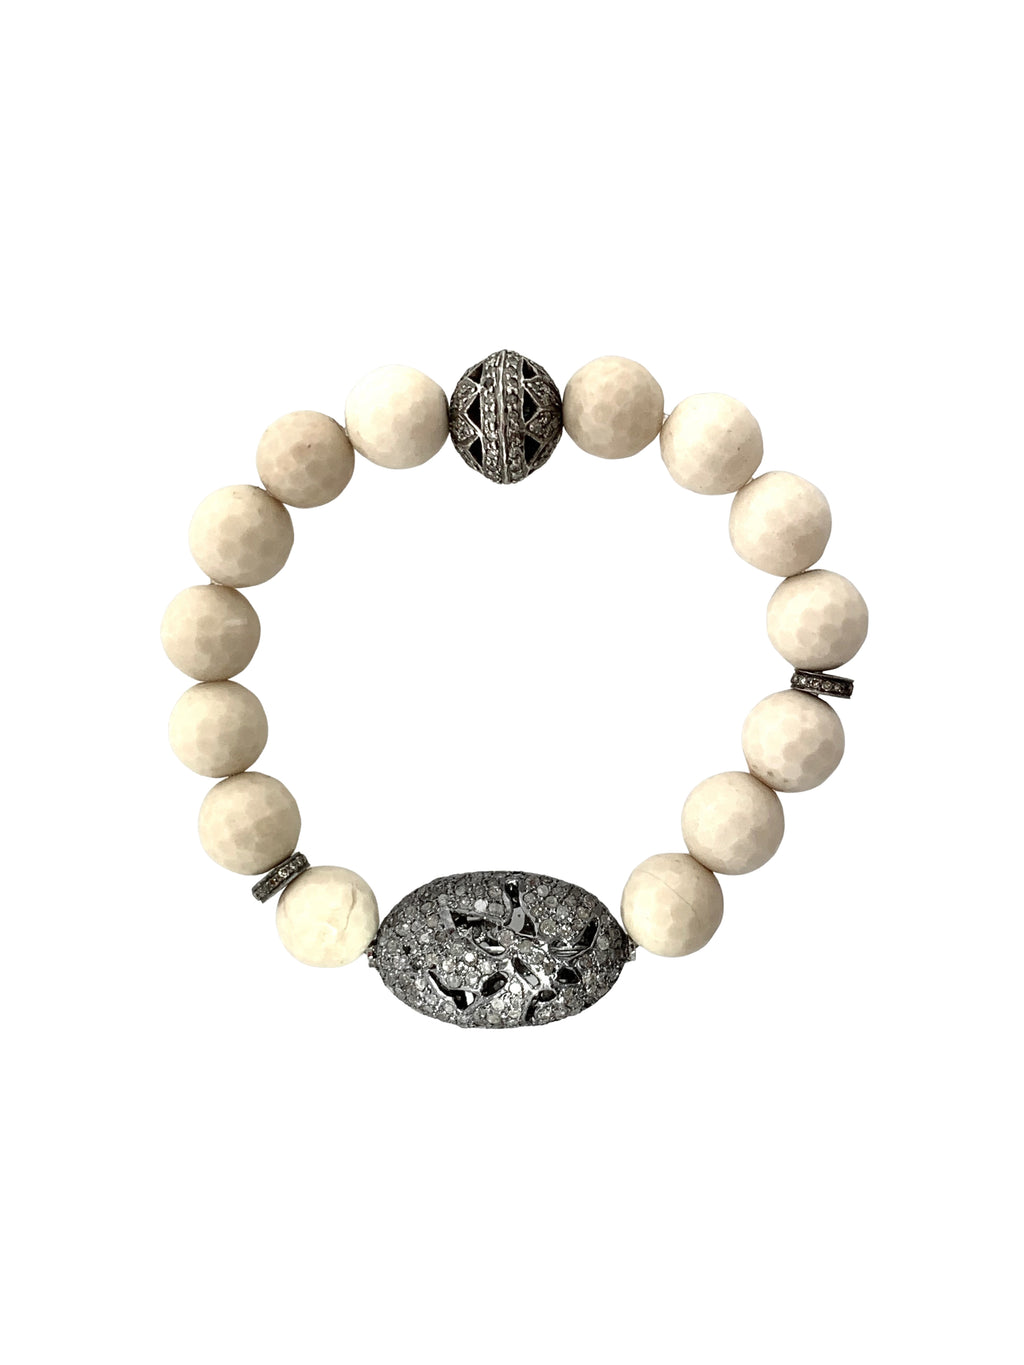 Pave Diamond Beads on Fossilized Coral